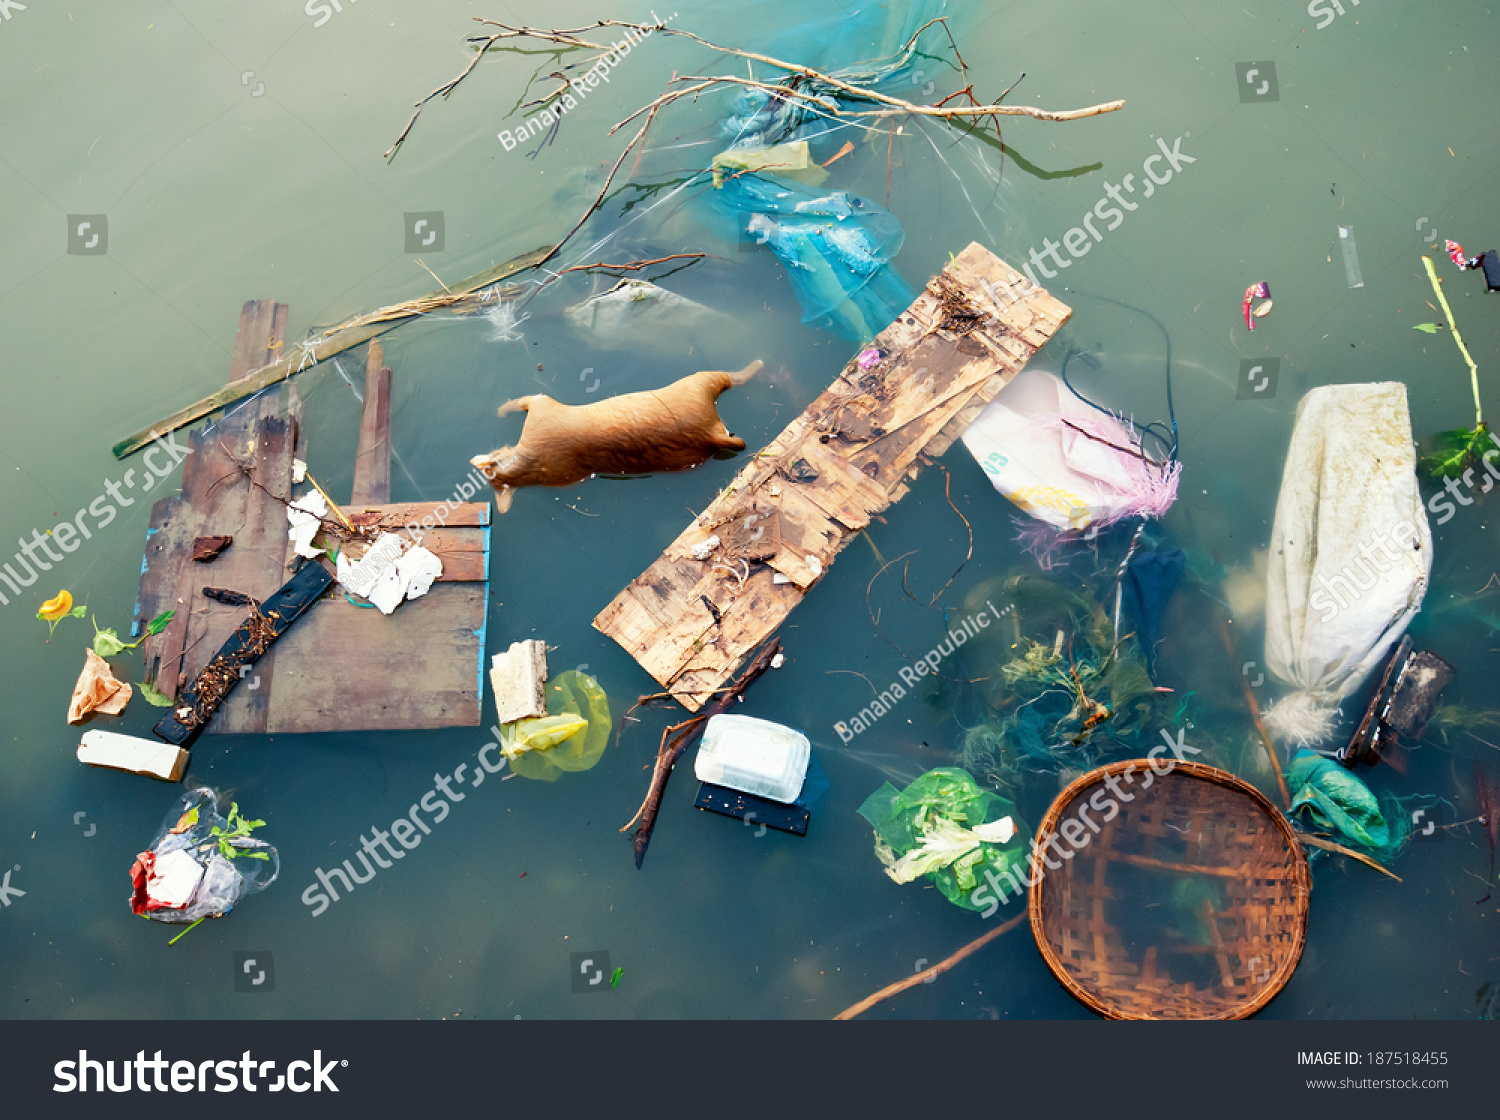 Water Pollution Plastic Garbage Dirty Trash Stock Photo ...